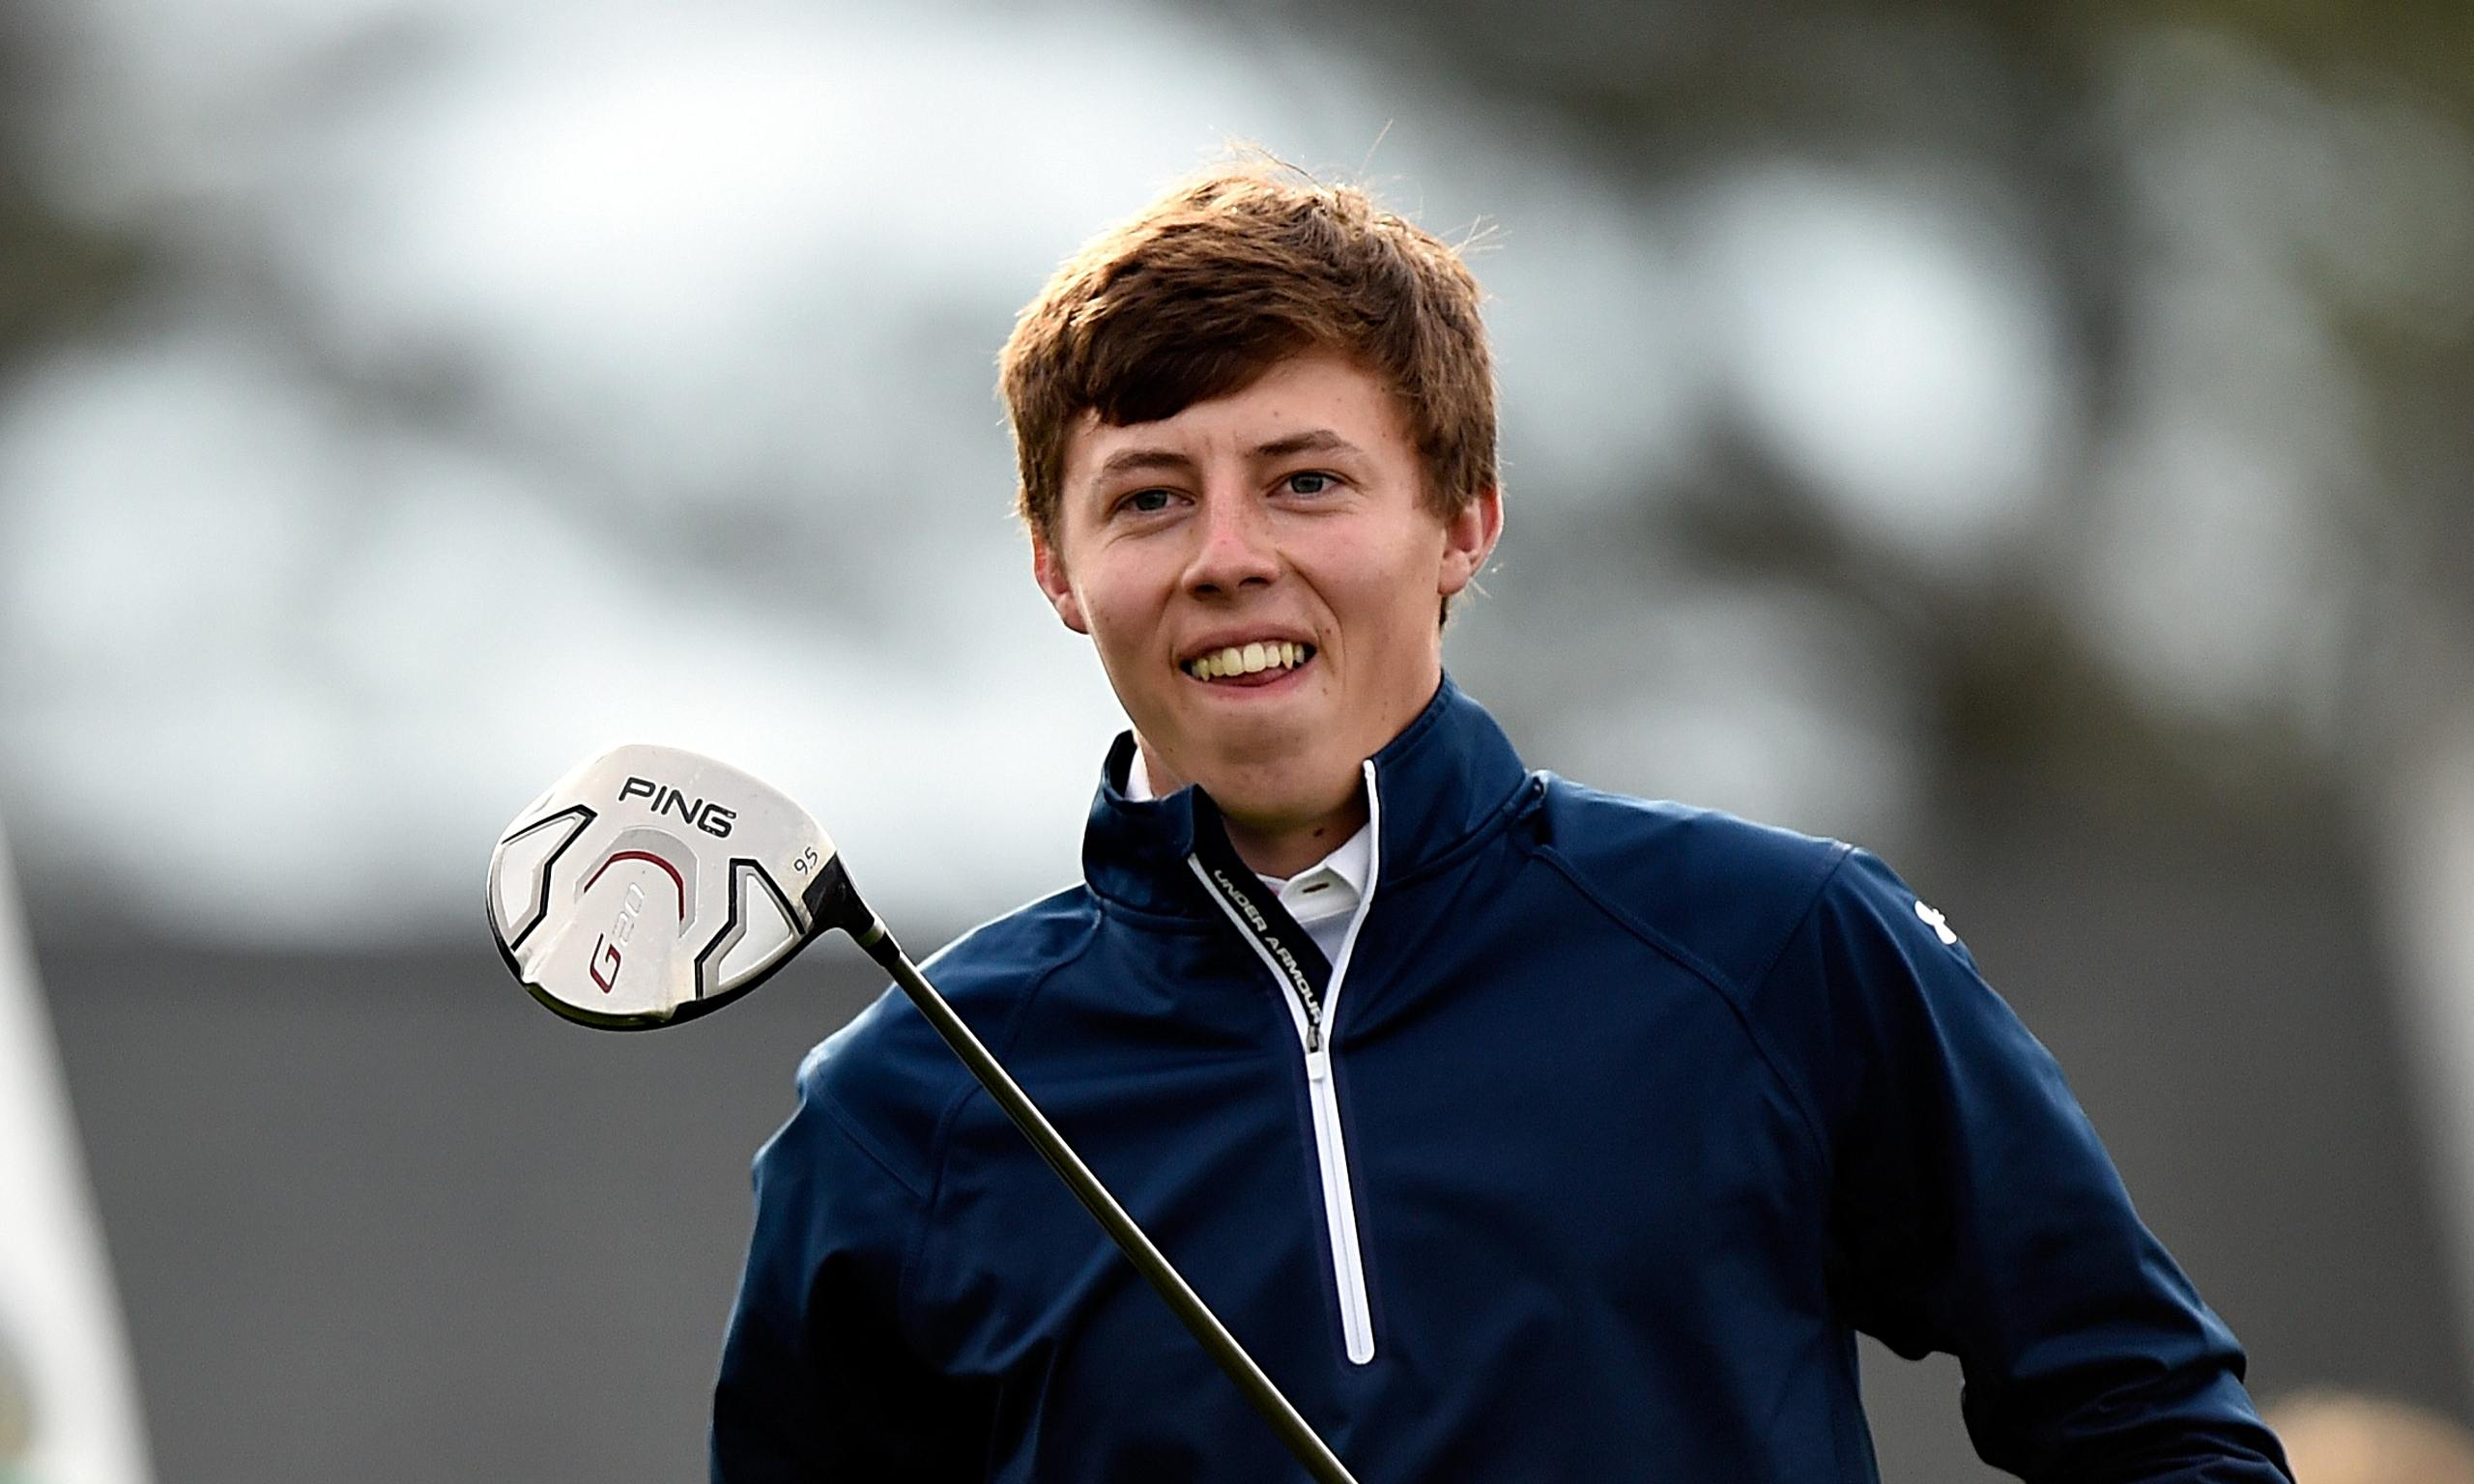 Champion Driving School >> US Amateur champion Matthew Fitzpatrick aims to cut a dash at the Masters | Sport | The Guardian